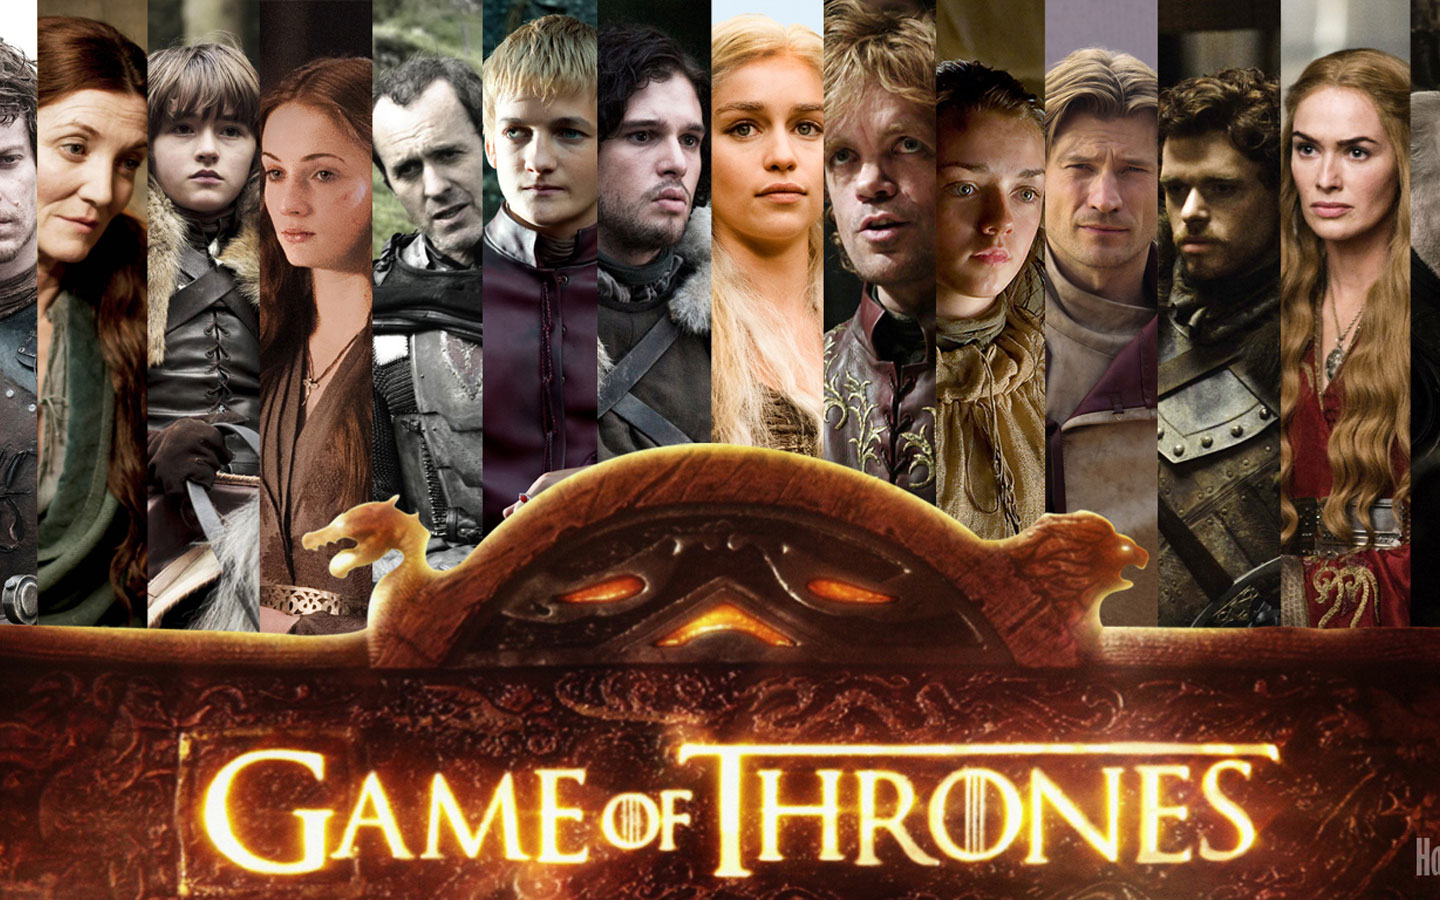 Game of Thrones Cinemax